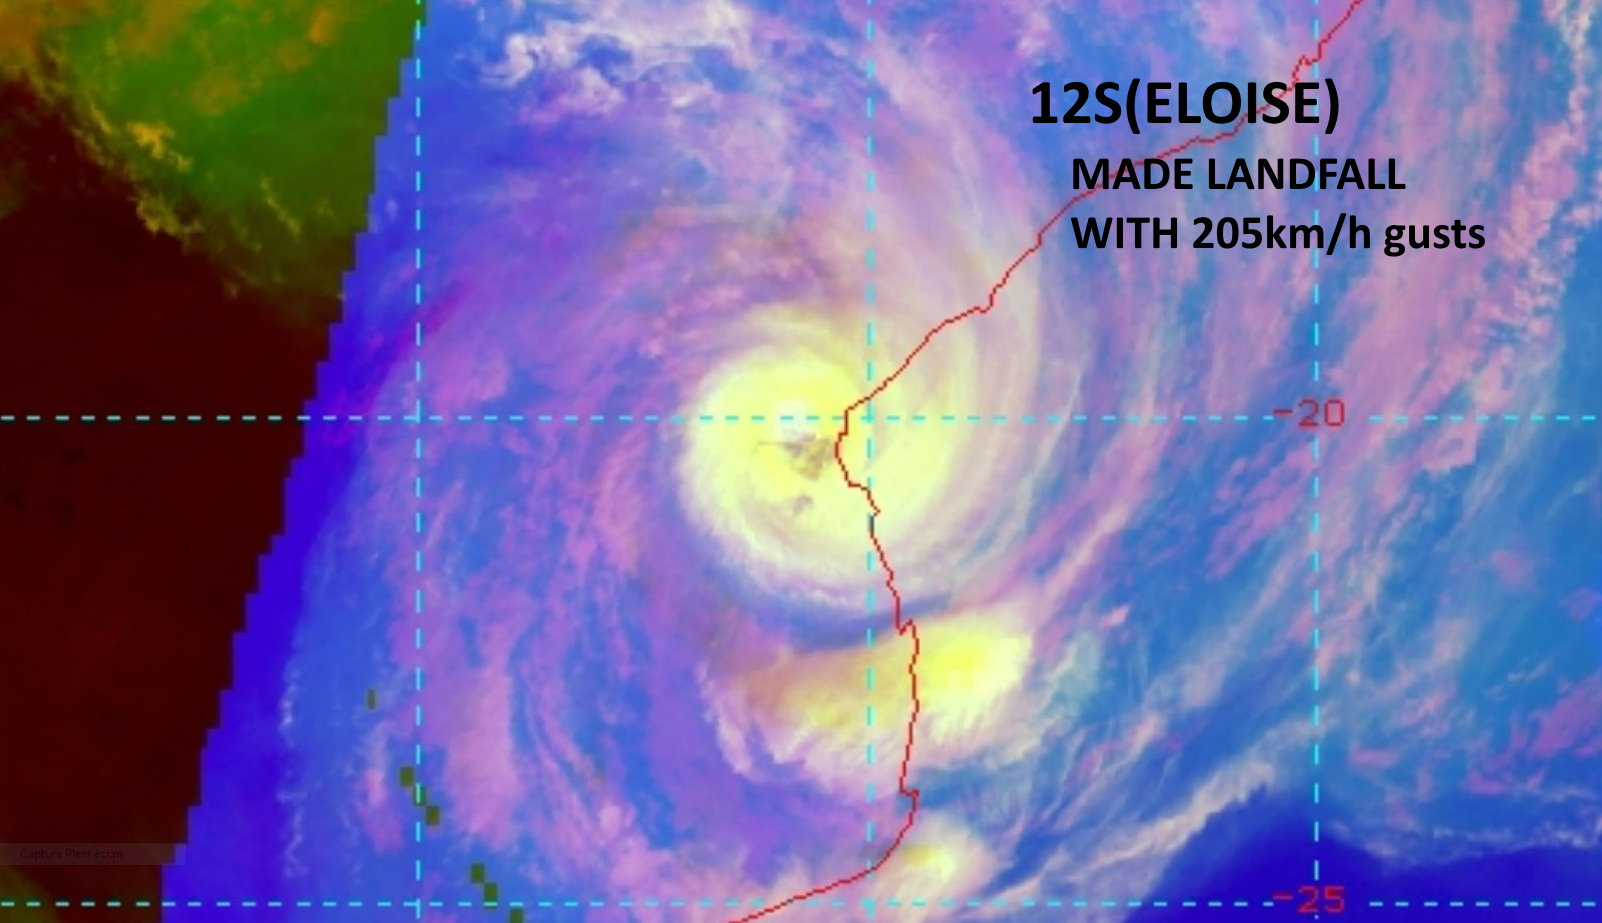 23/0314UTC. THE CYCLONE'S CORE REMAINED COMPACT AND WELL ORGANIZED JUST AFTER LANDFALL BUT WILL RAPIDLY UNRAVEL NEXT 24/48H.